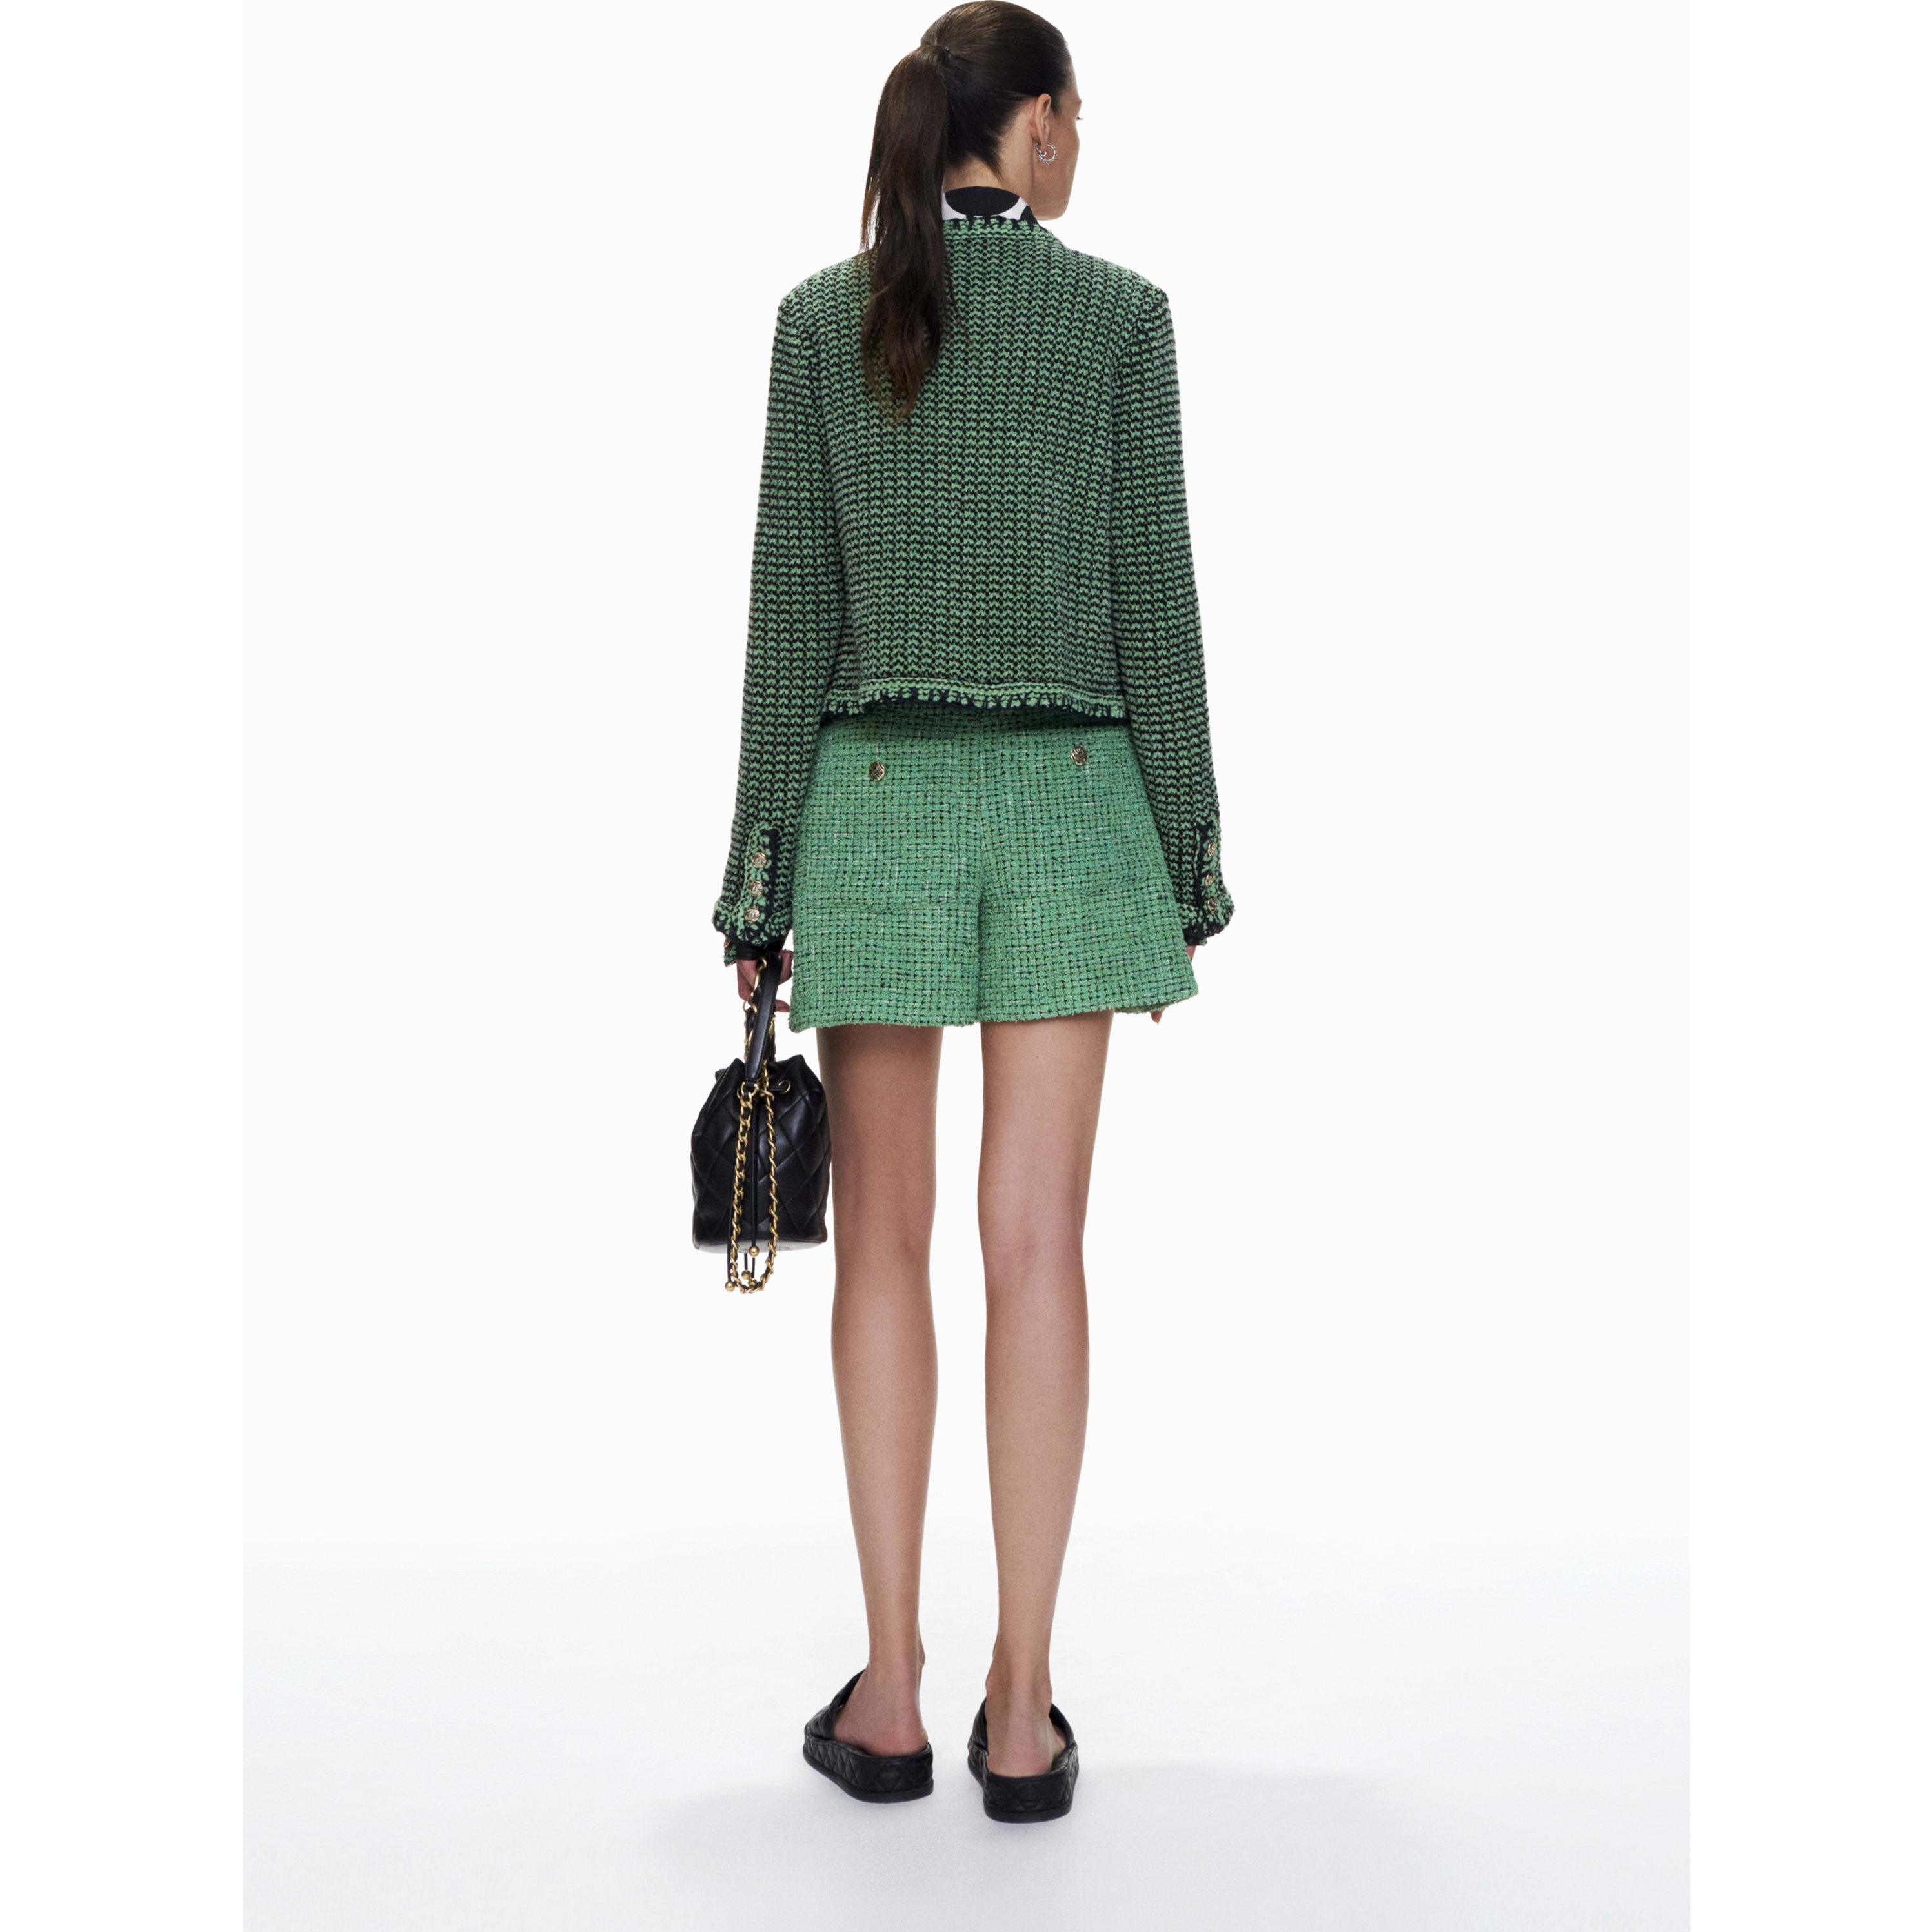 Shorts - Green & Black - Tweed - CHANEL - Alternative view - see standard sized version